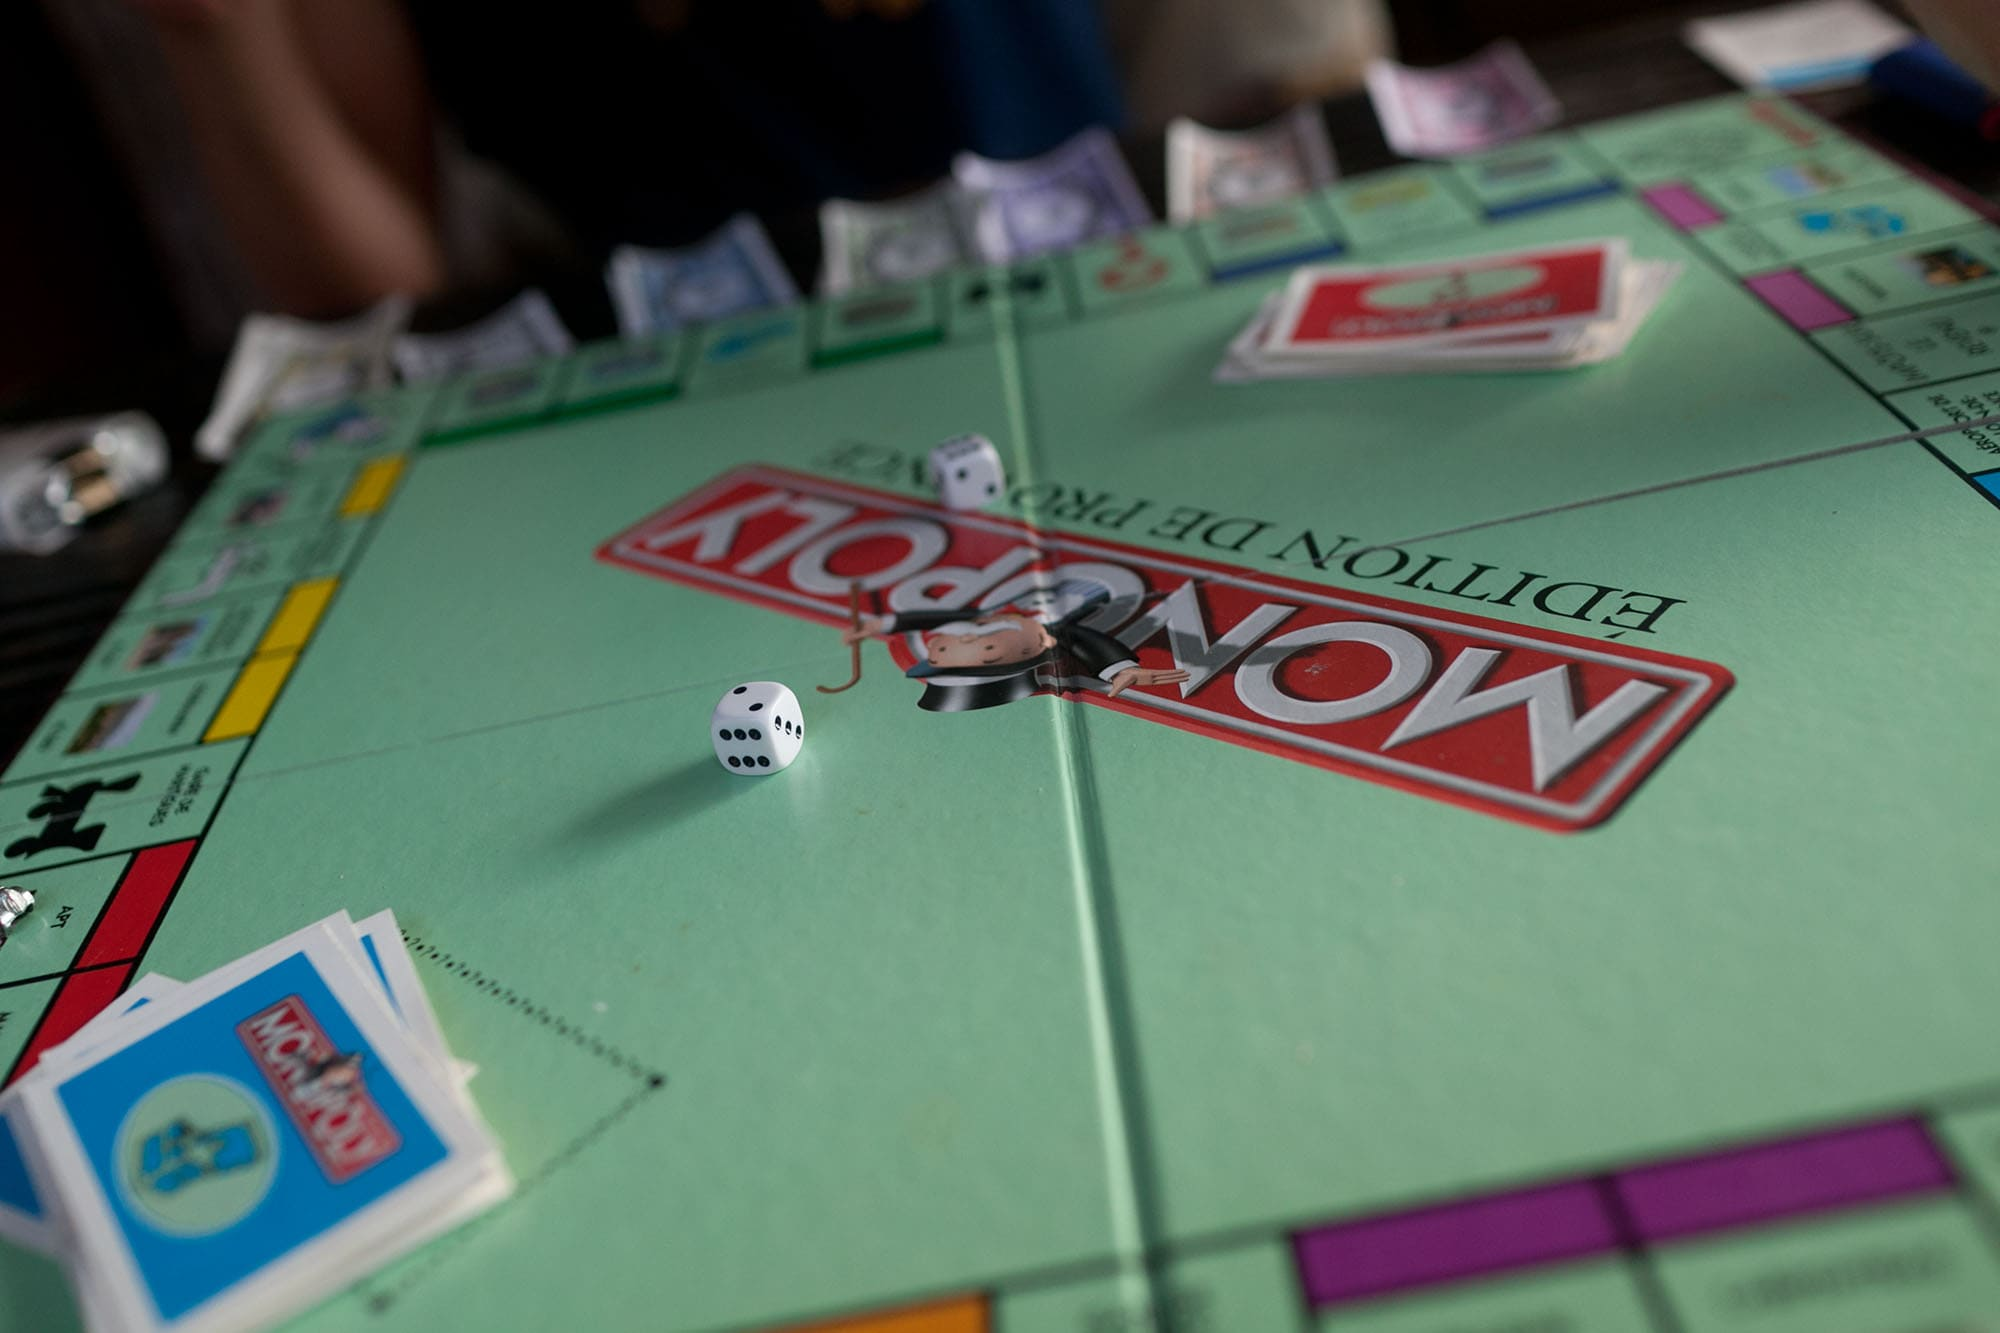 Playing the French version of Monopoly in El Nido, Palawan, Philippines